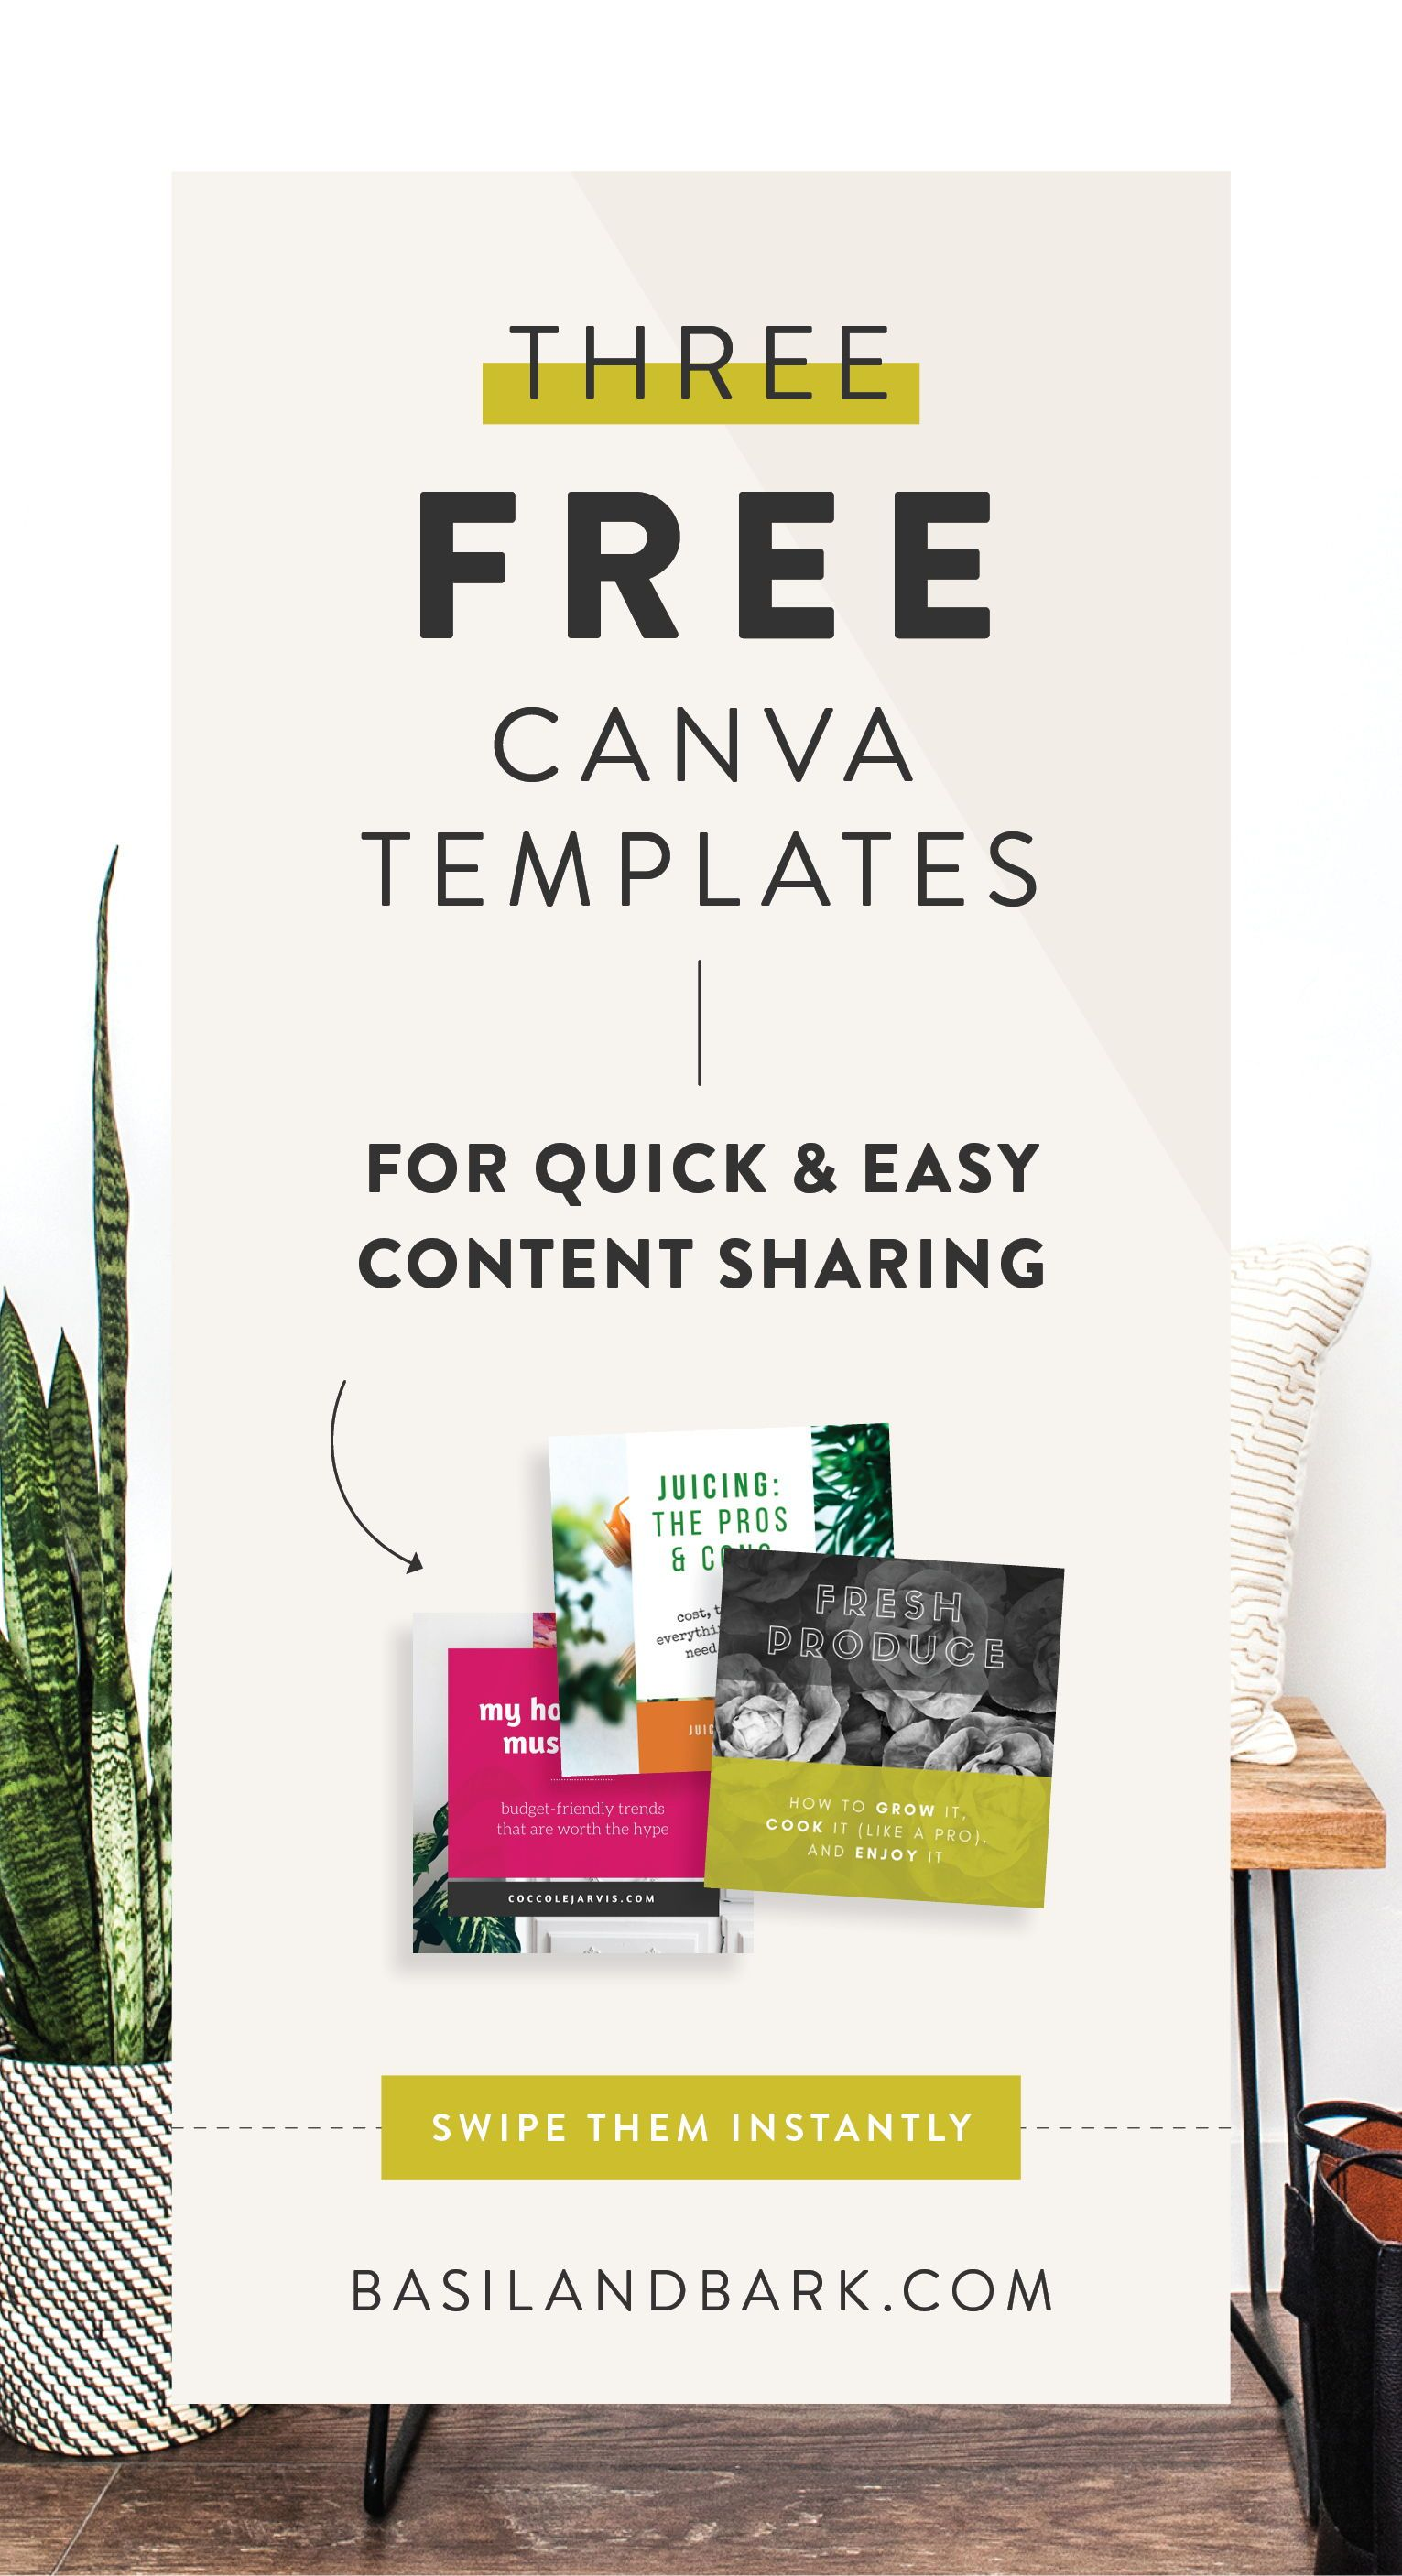 learn how to customize your free canva templates to be unique to